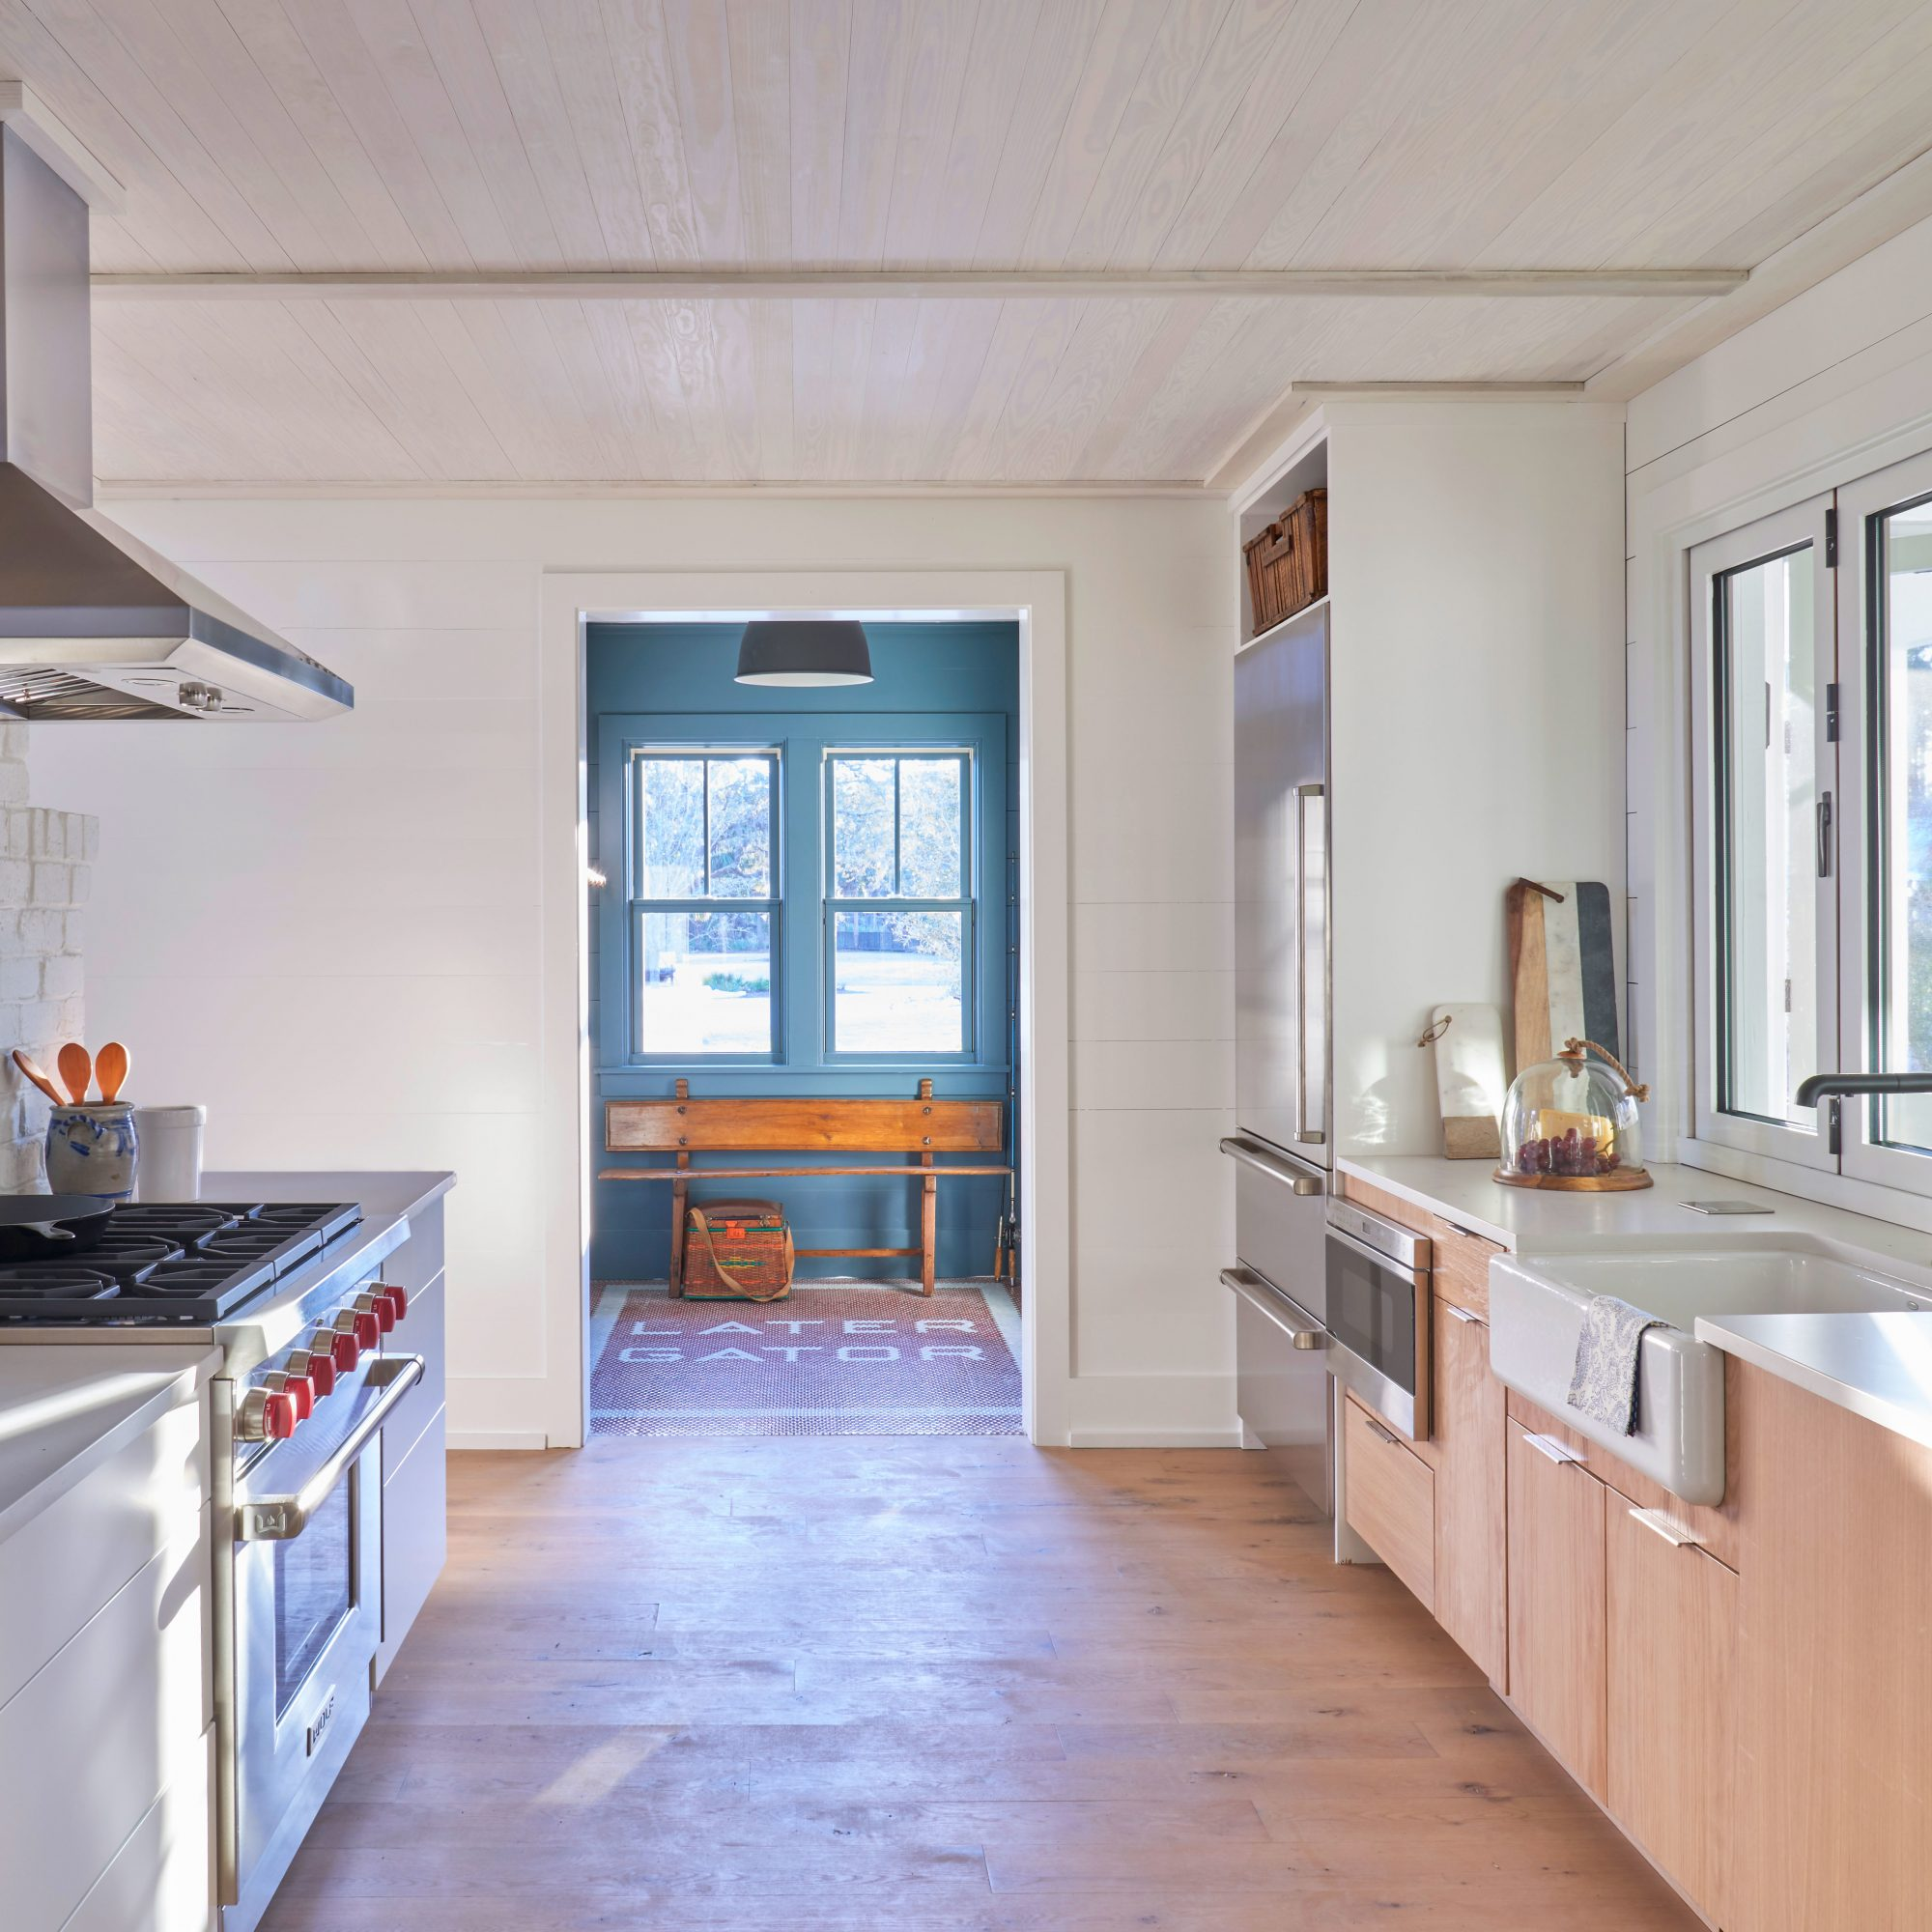 A kitchen with light wood floors, custom cabinetry, and concrete countertops in a contemporary Lowcountry home.